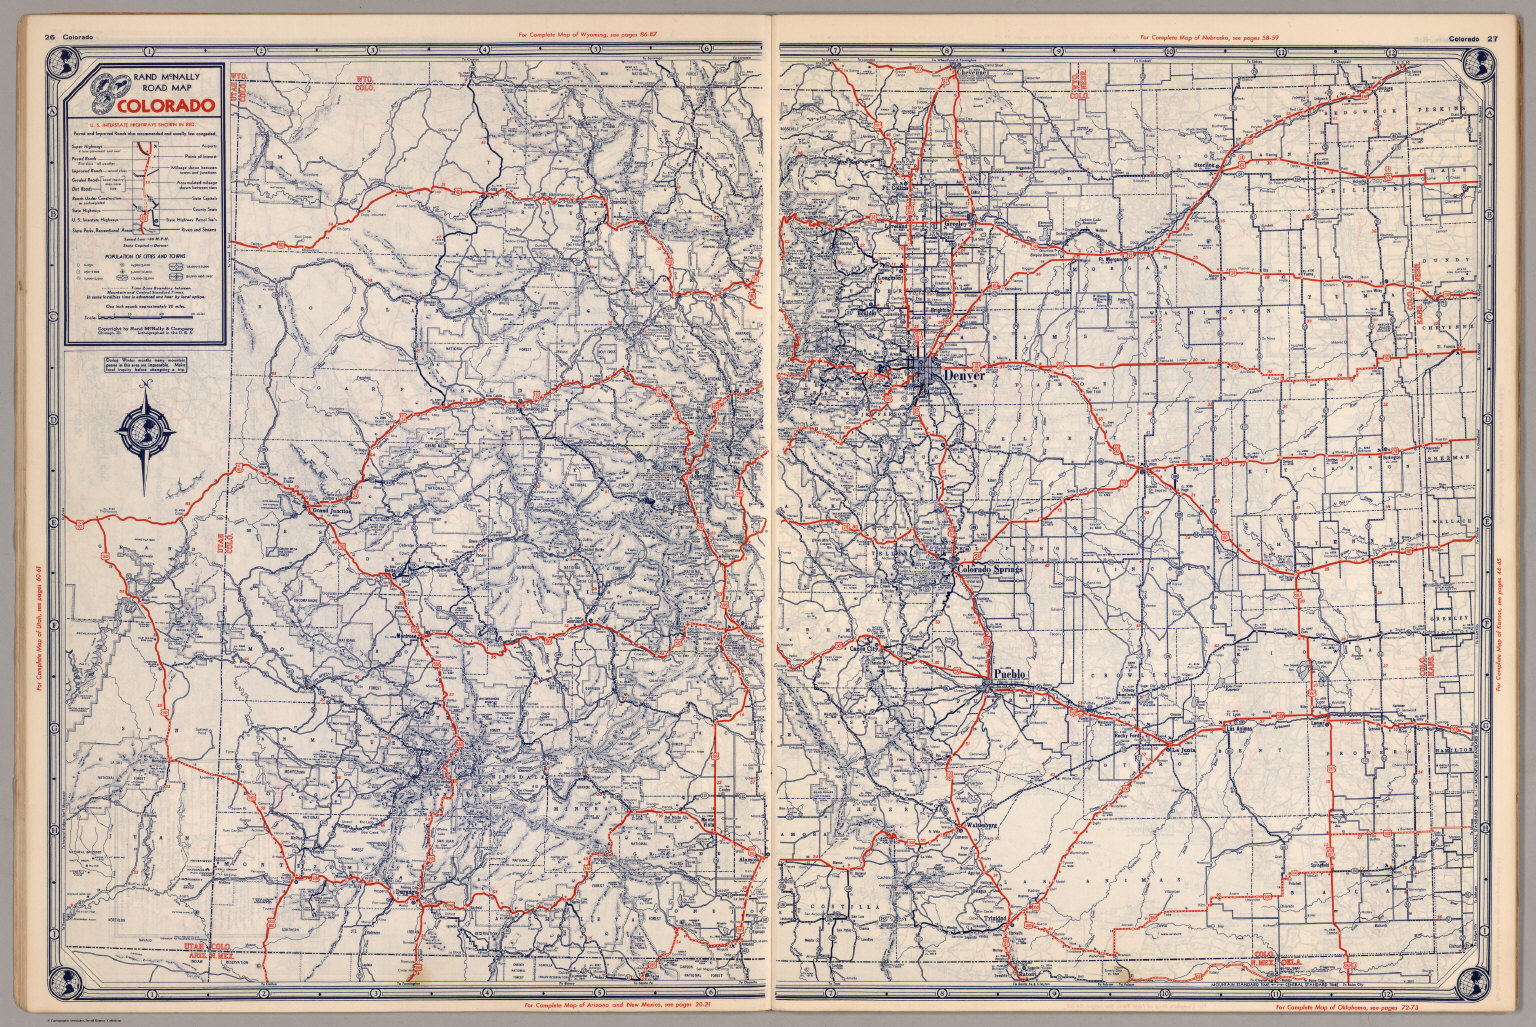 Road Map Of Colorado David Rumsey Historical Map Collection - Colorado road map